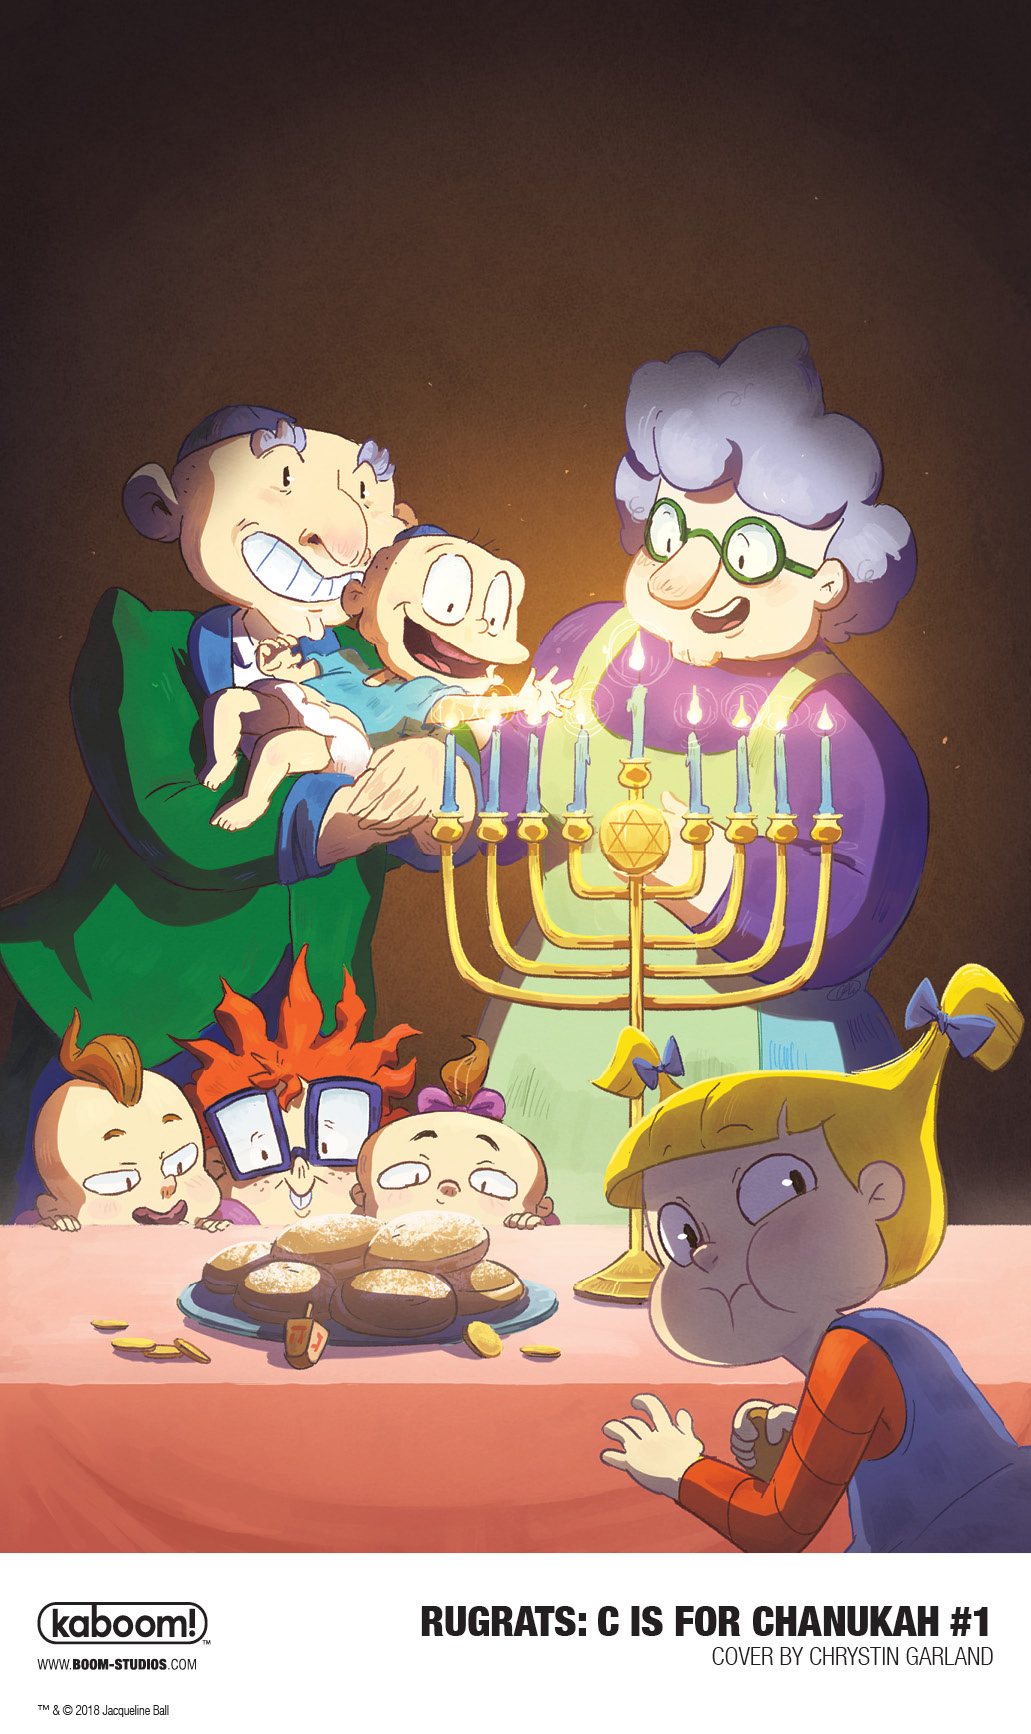 Rugrats C is for Chanukah #1 (2018)